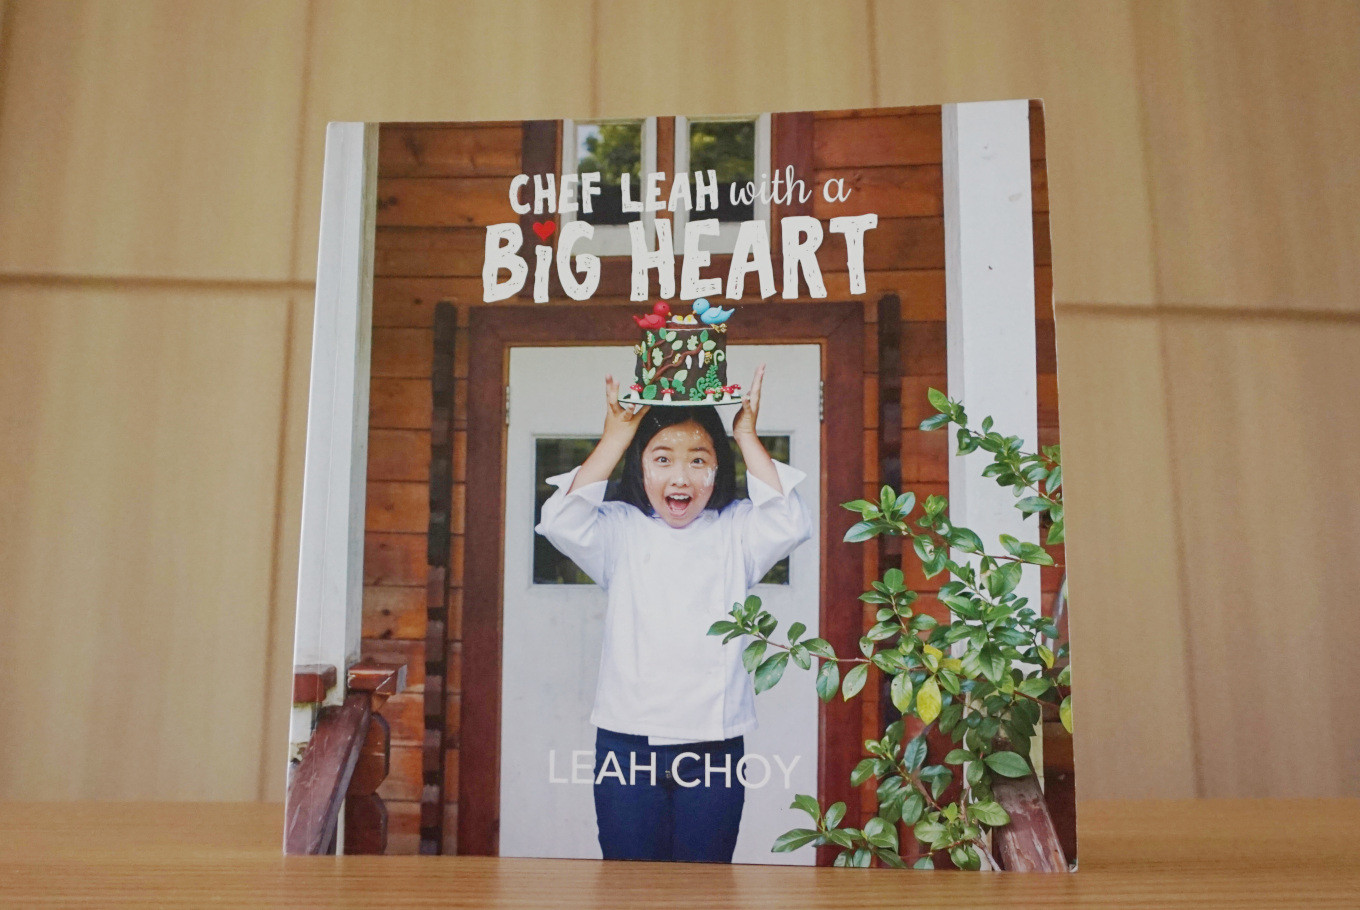 'Chef Leah with a Big Heart' tells heartwarming story of sisterhood